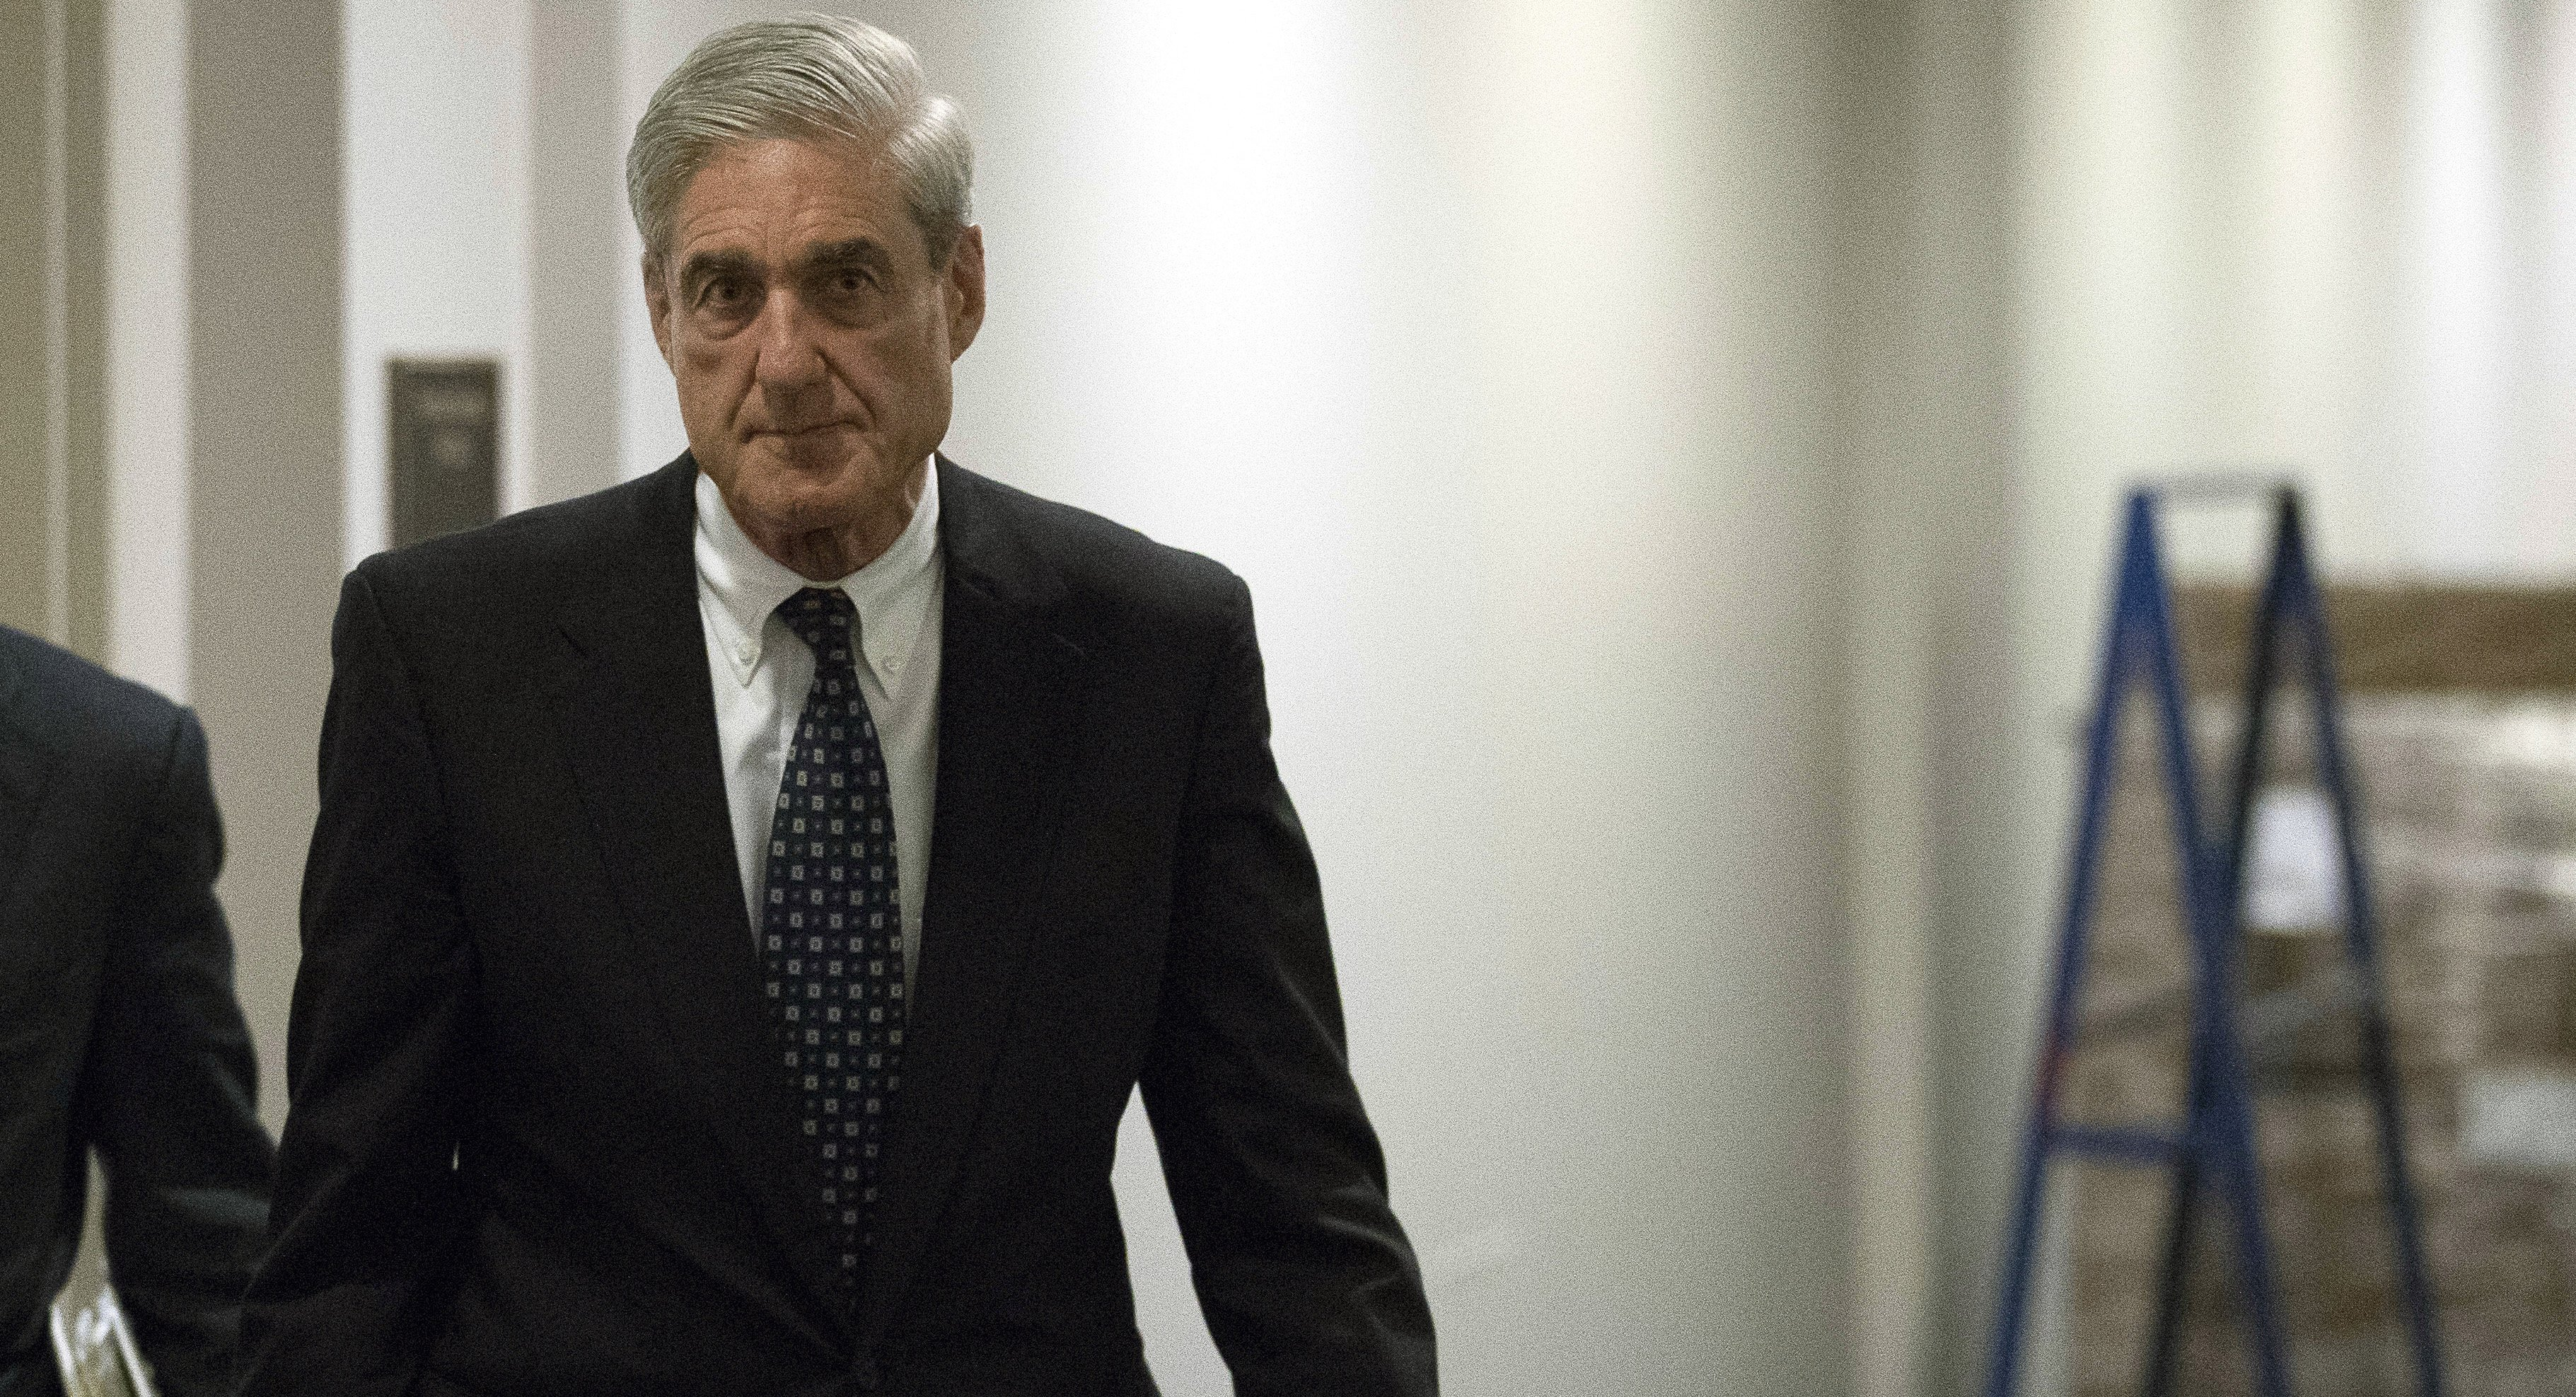 Mueller invokes unusual conspiracy to defraud government charge to ensnare more targets